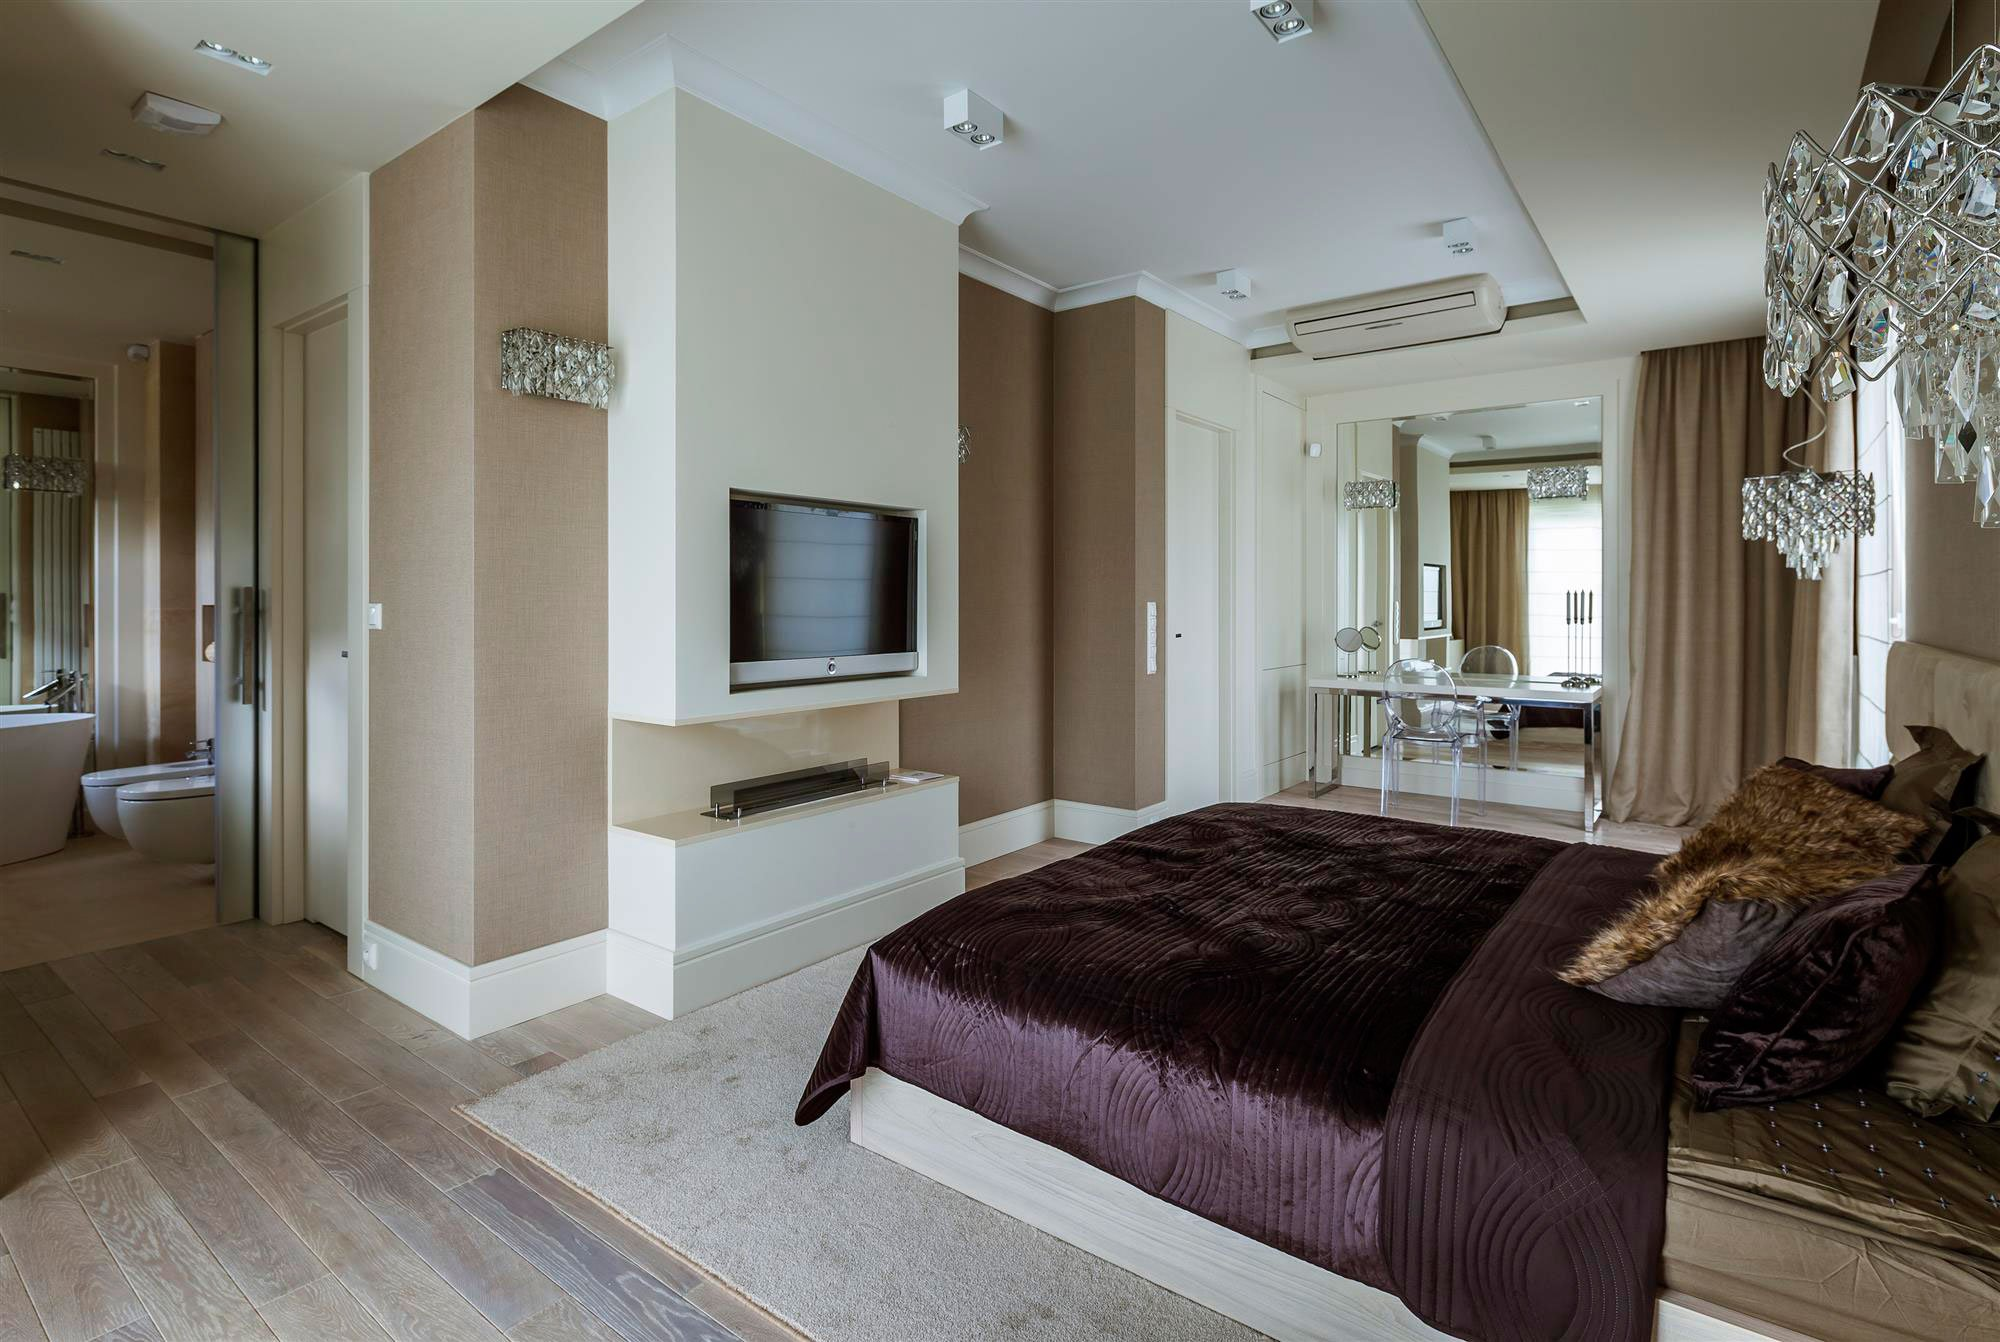 Apartment-in-Warsaw-15